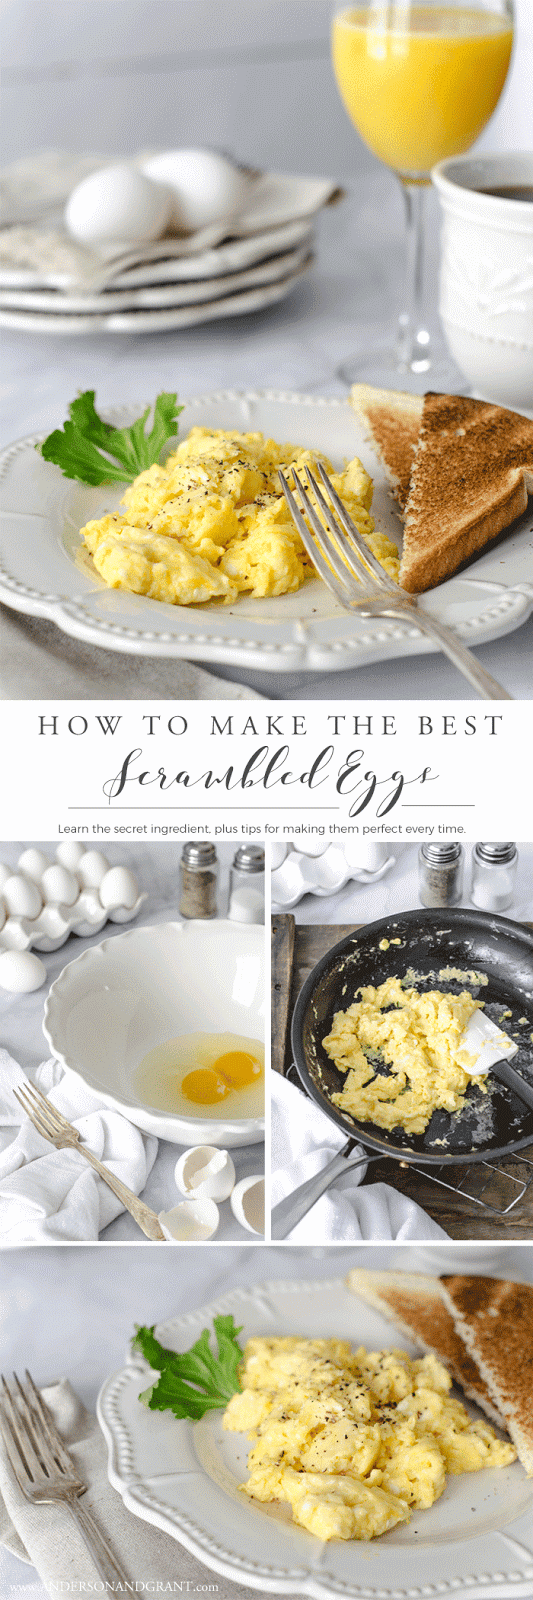 Learn how to make scrambled eggs that are creamy, fluffy, and full of flavor.  Plus, find out what secret ingredient you should be adding to make them the best you've ever tasted.  |  www.andersonandgrant.com